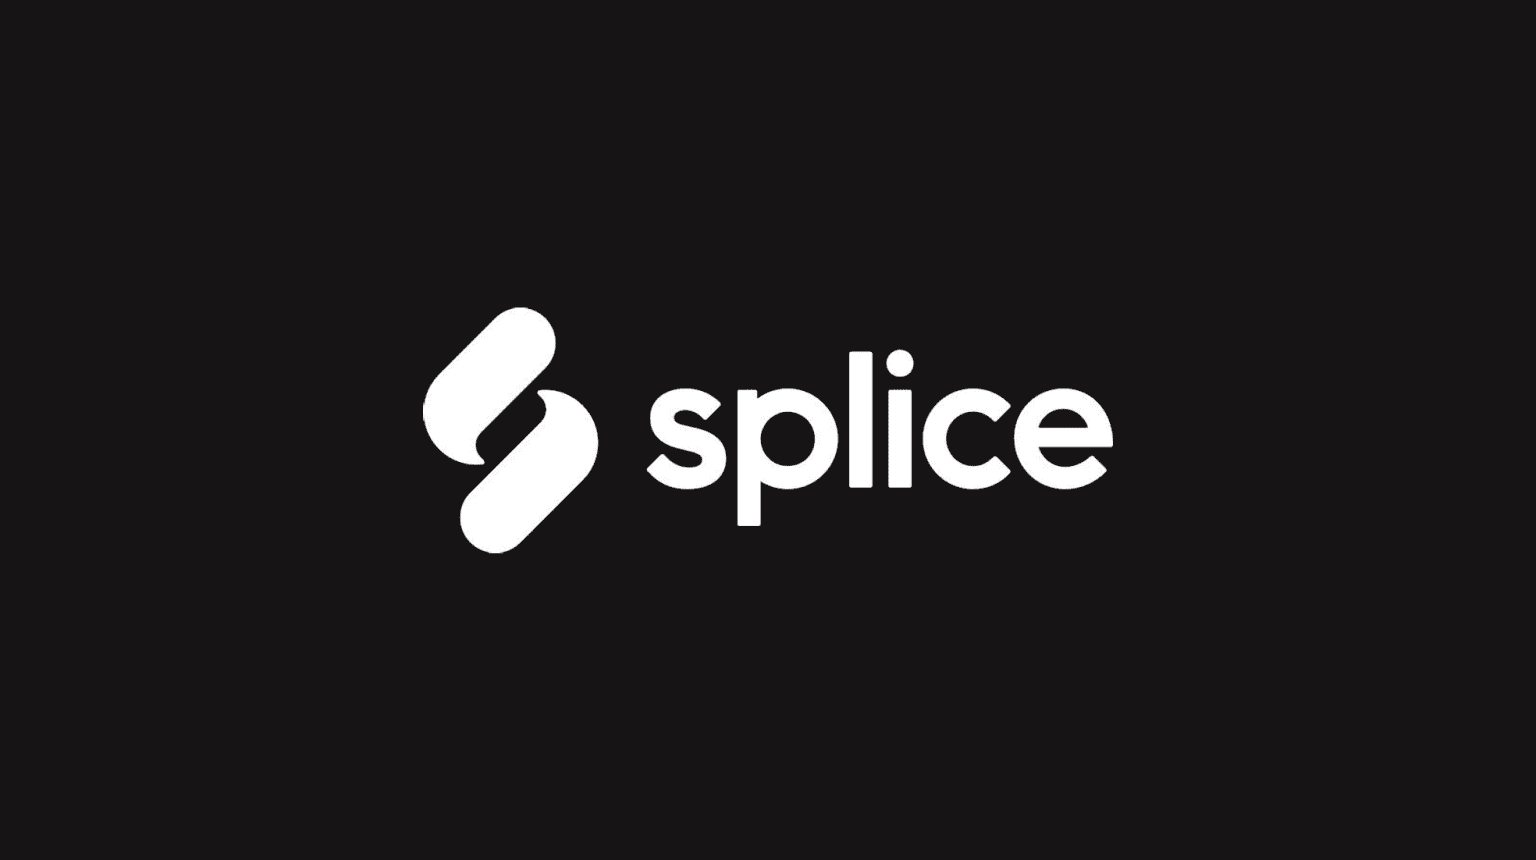 Splice: Empowering the Modern Musician